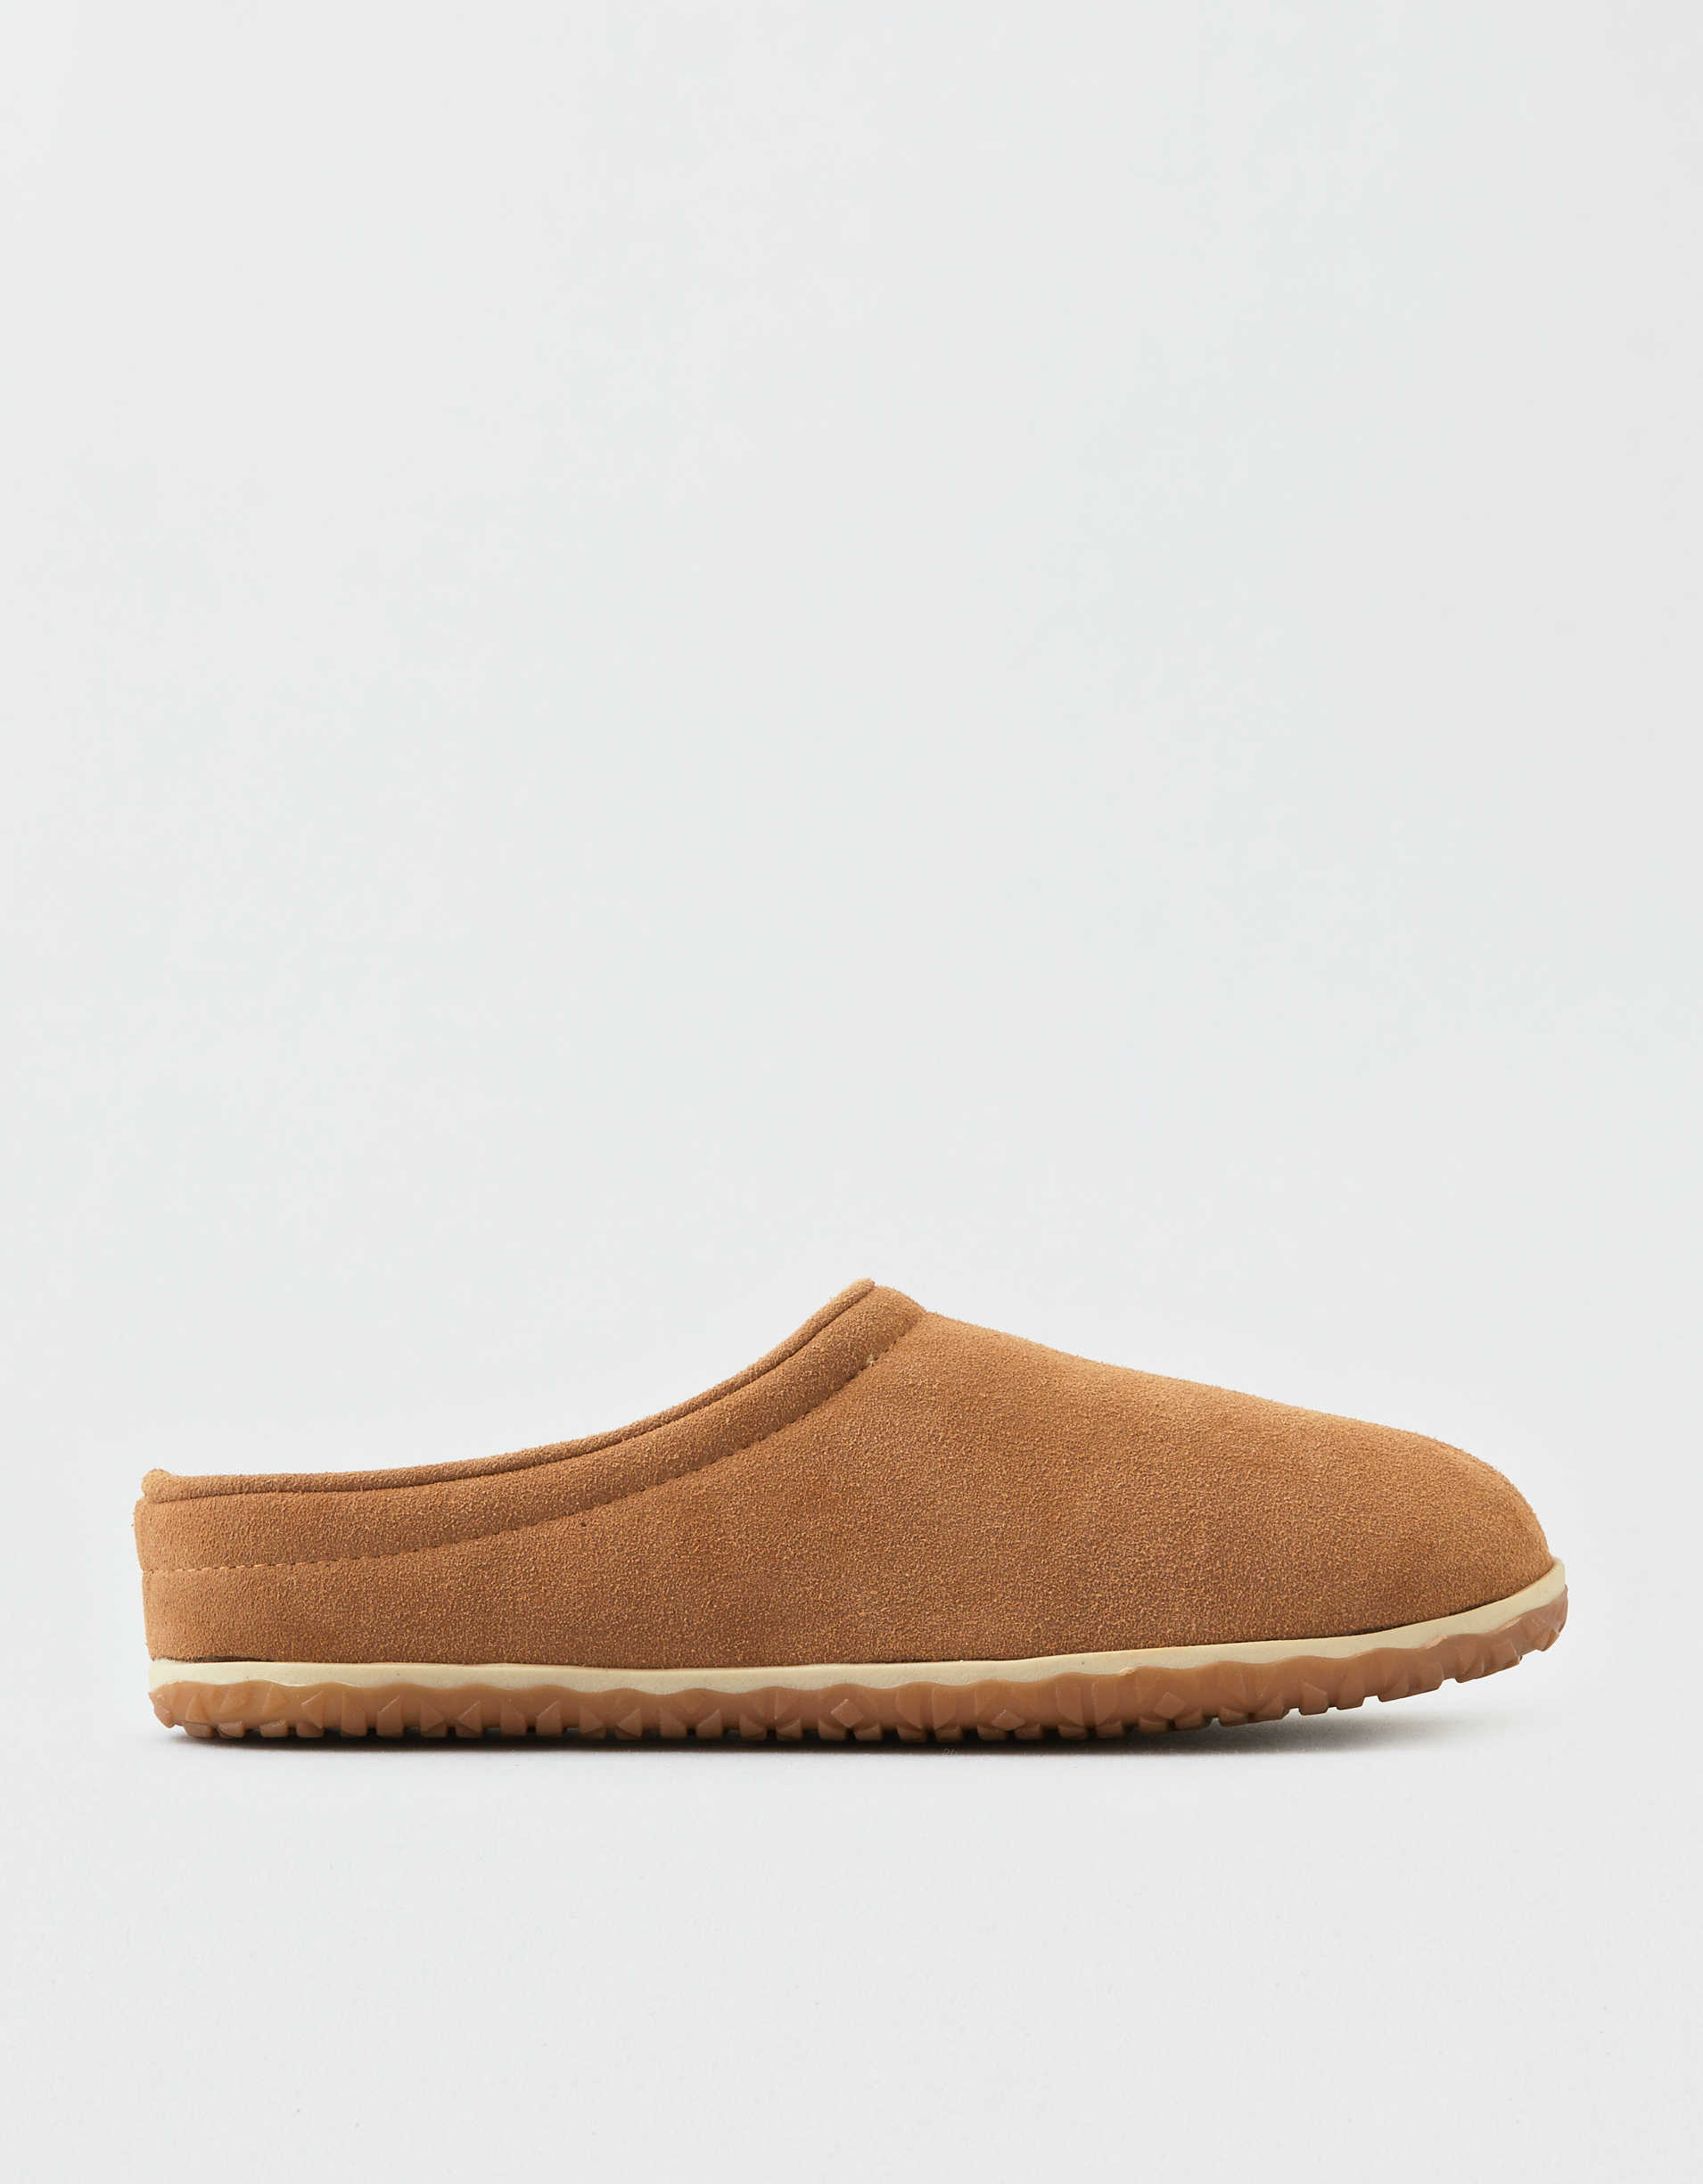 Minnetonka Men's Taylor Moccasin